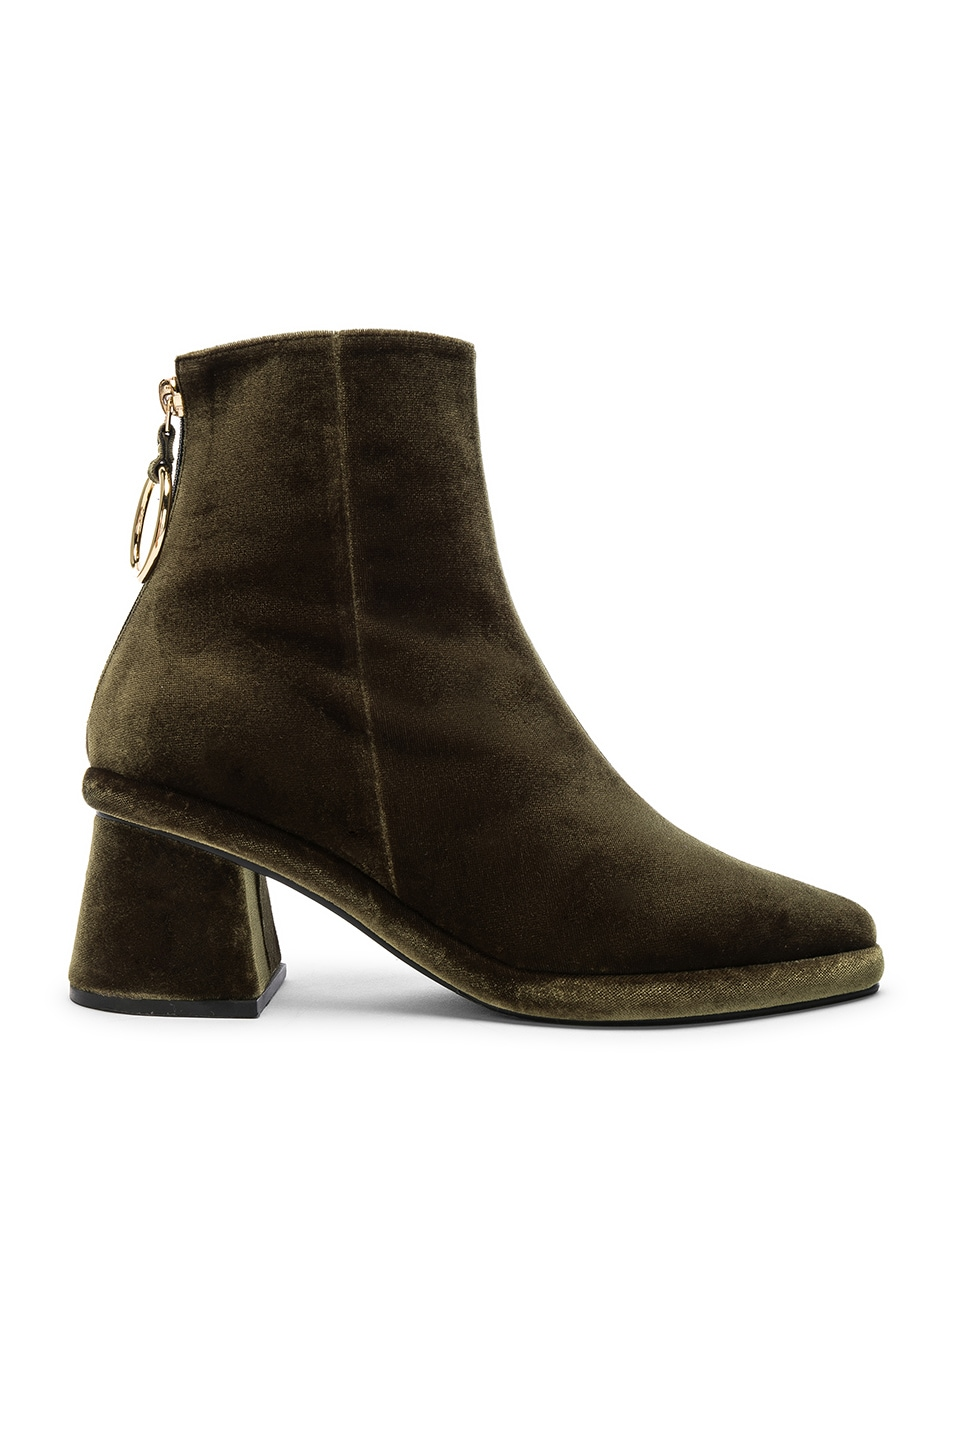 Image 1 of Reike Nen Ring Slim Boots in Green